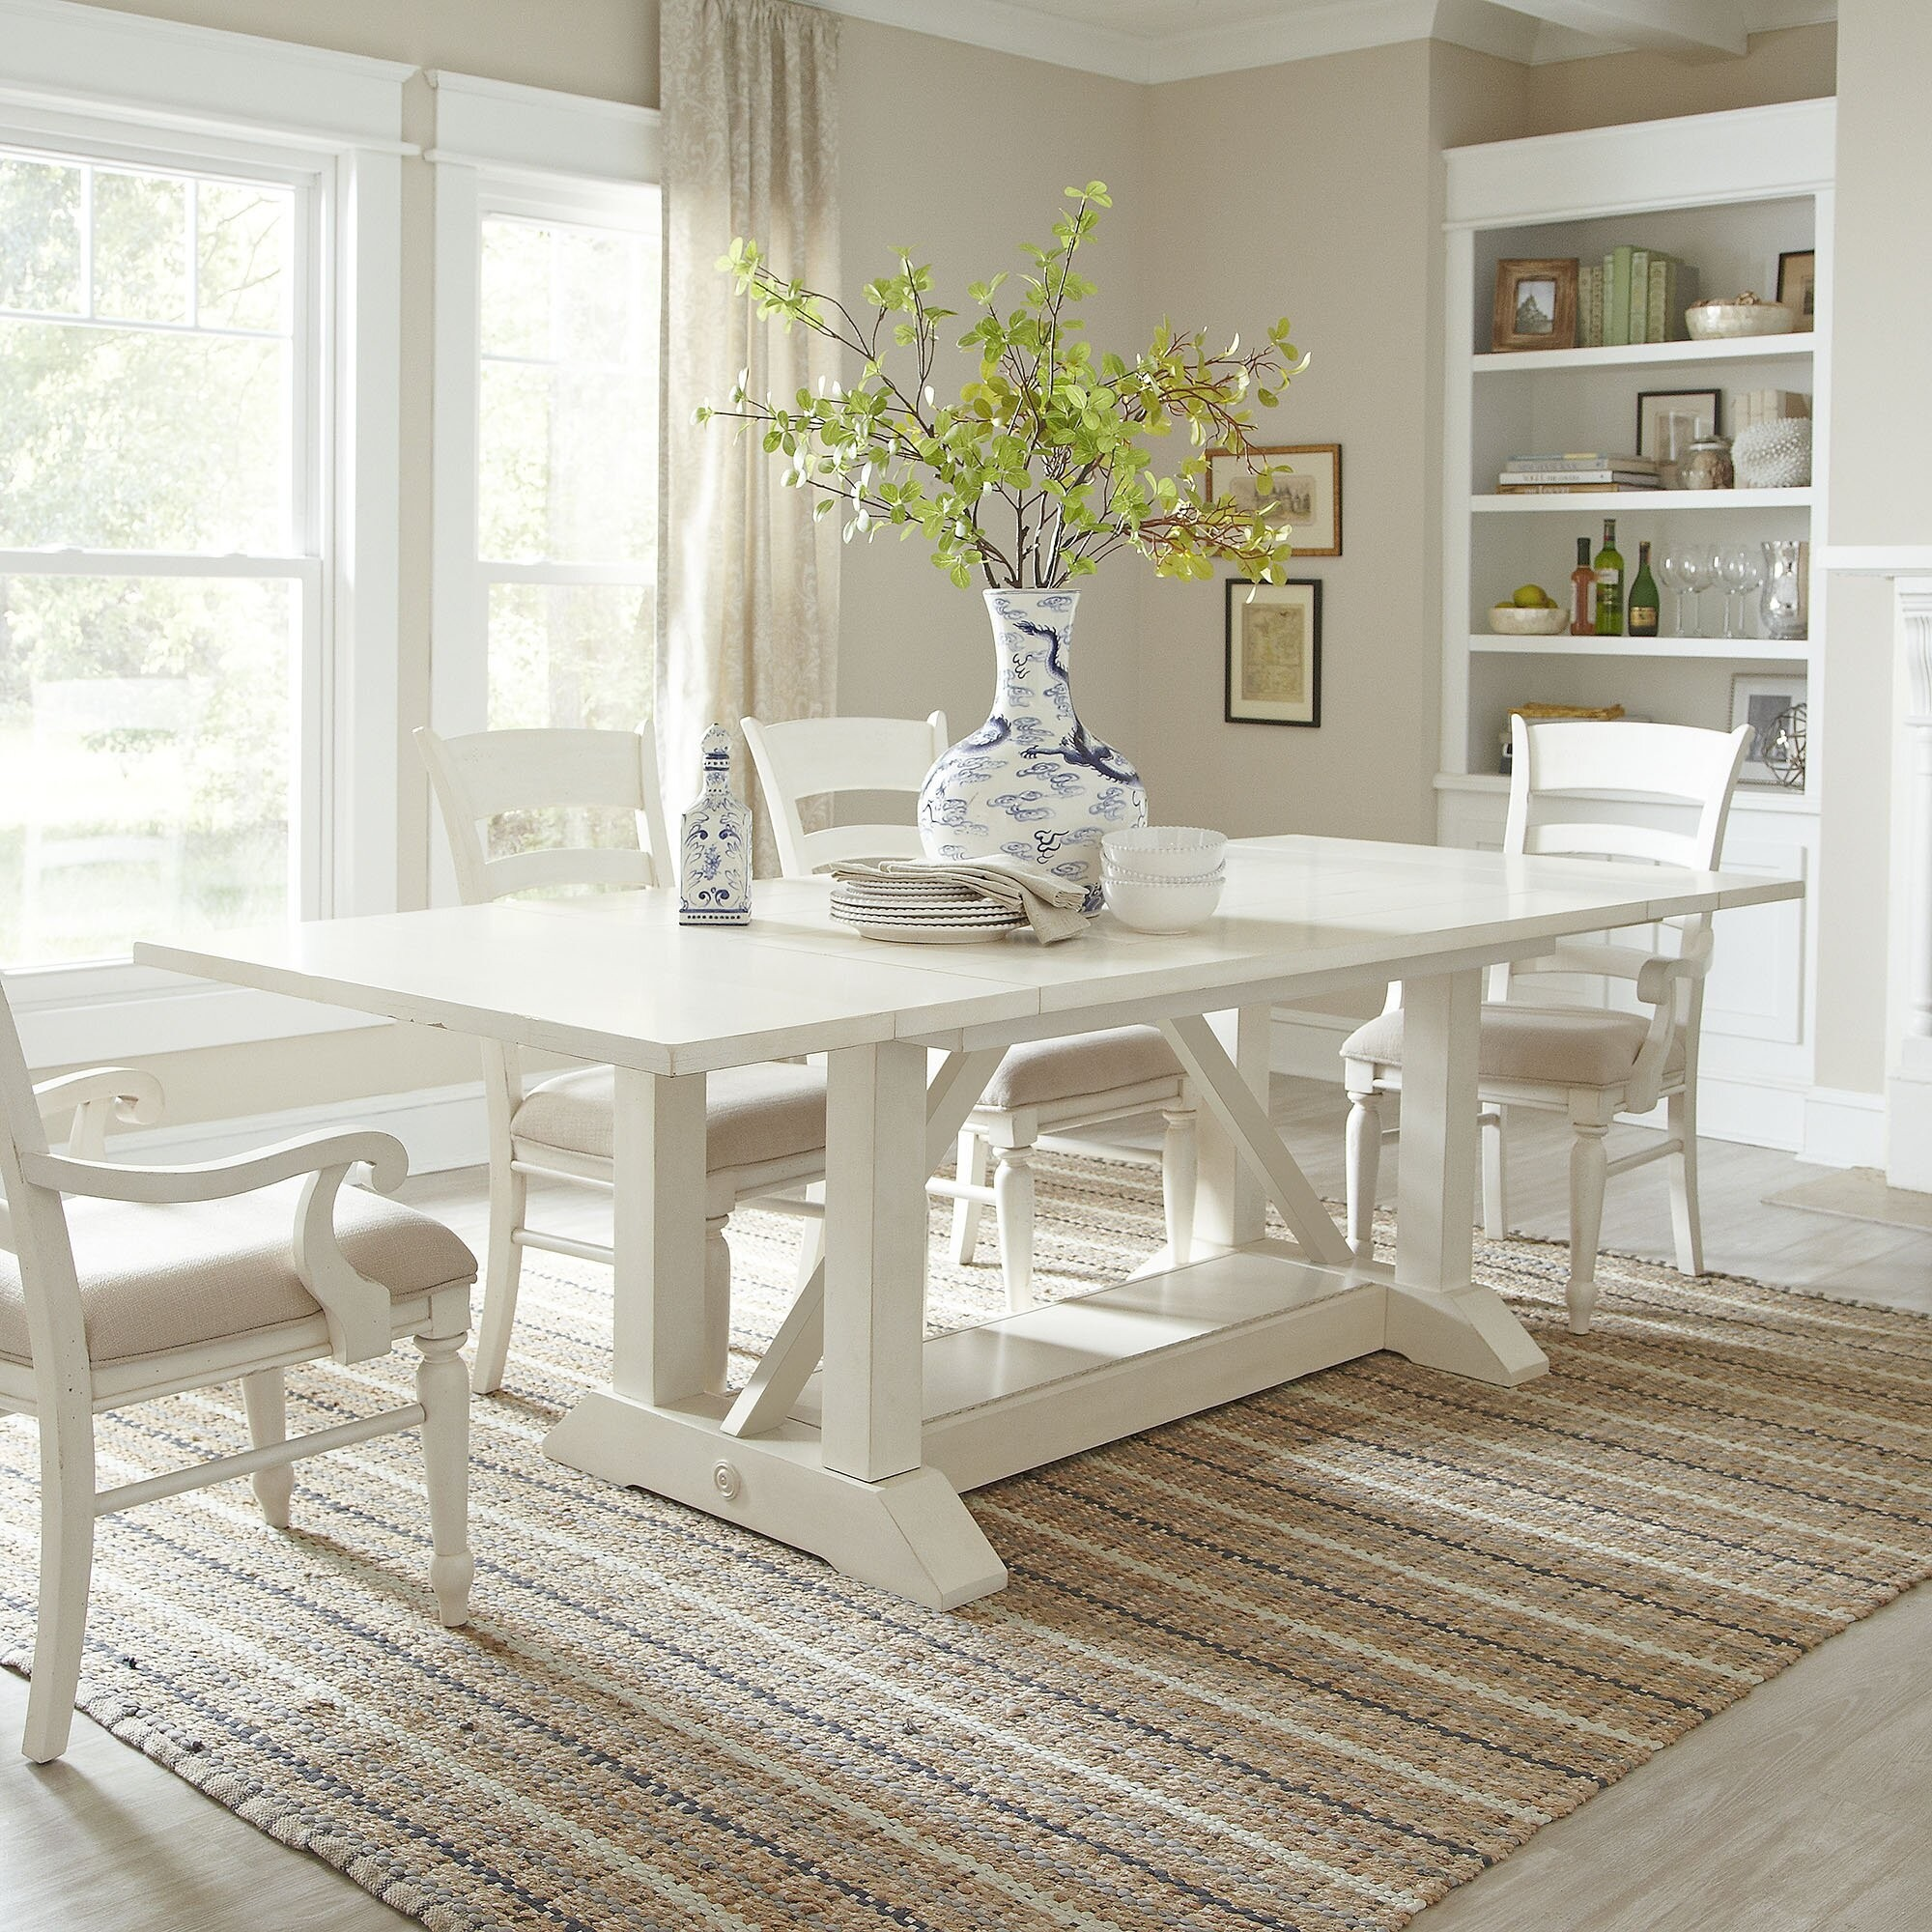 White Distressed Dining Table Ideas On Foter